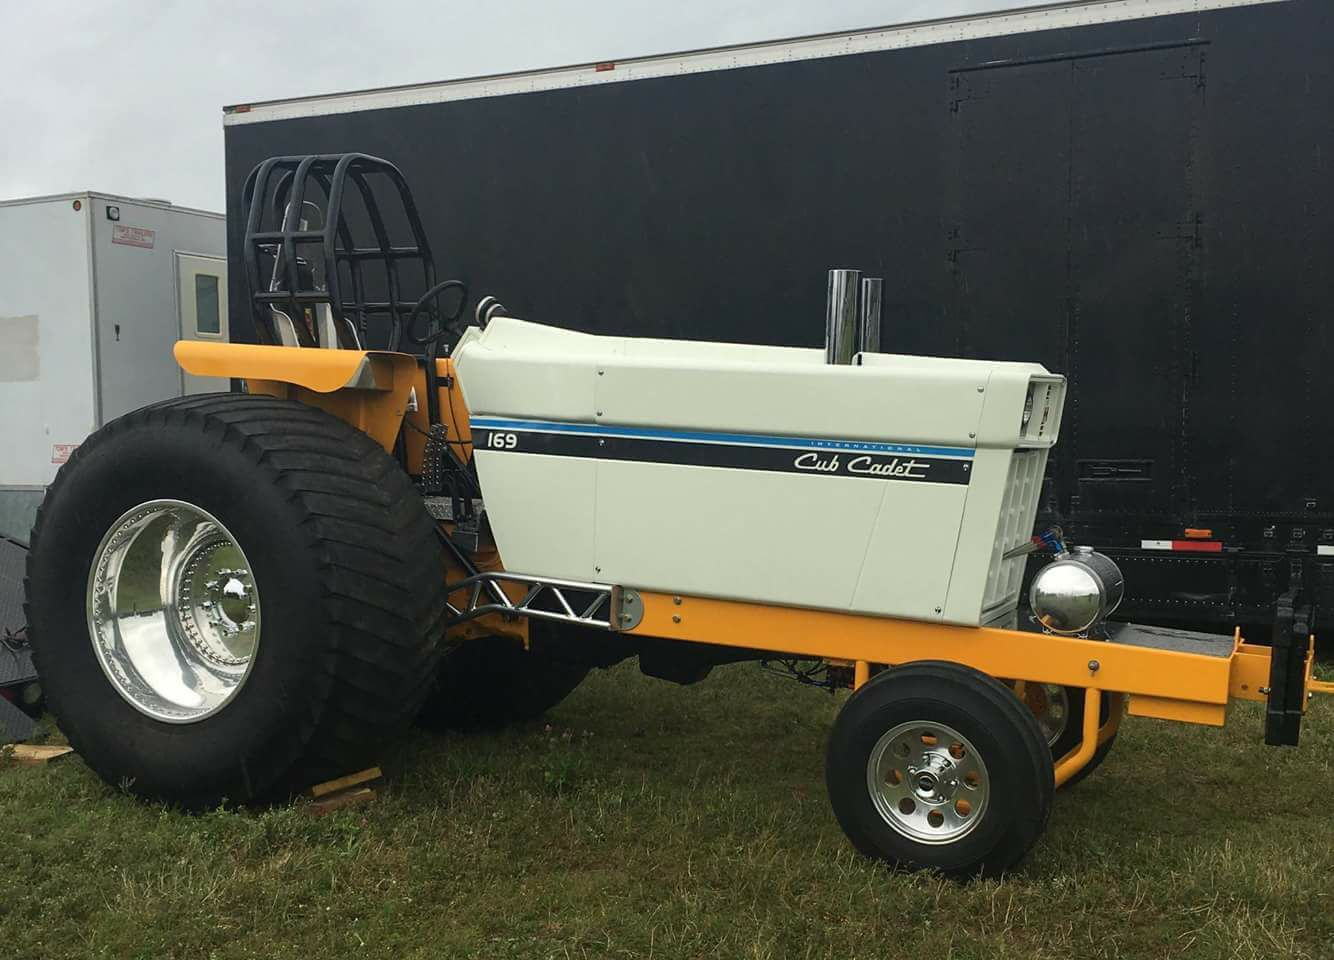 Cub Cadet Color Scheme On A 1066 Pulling Tractor Looks